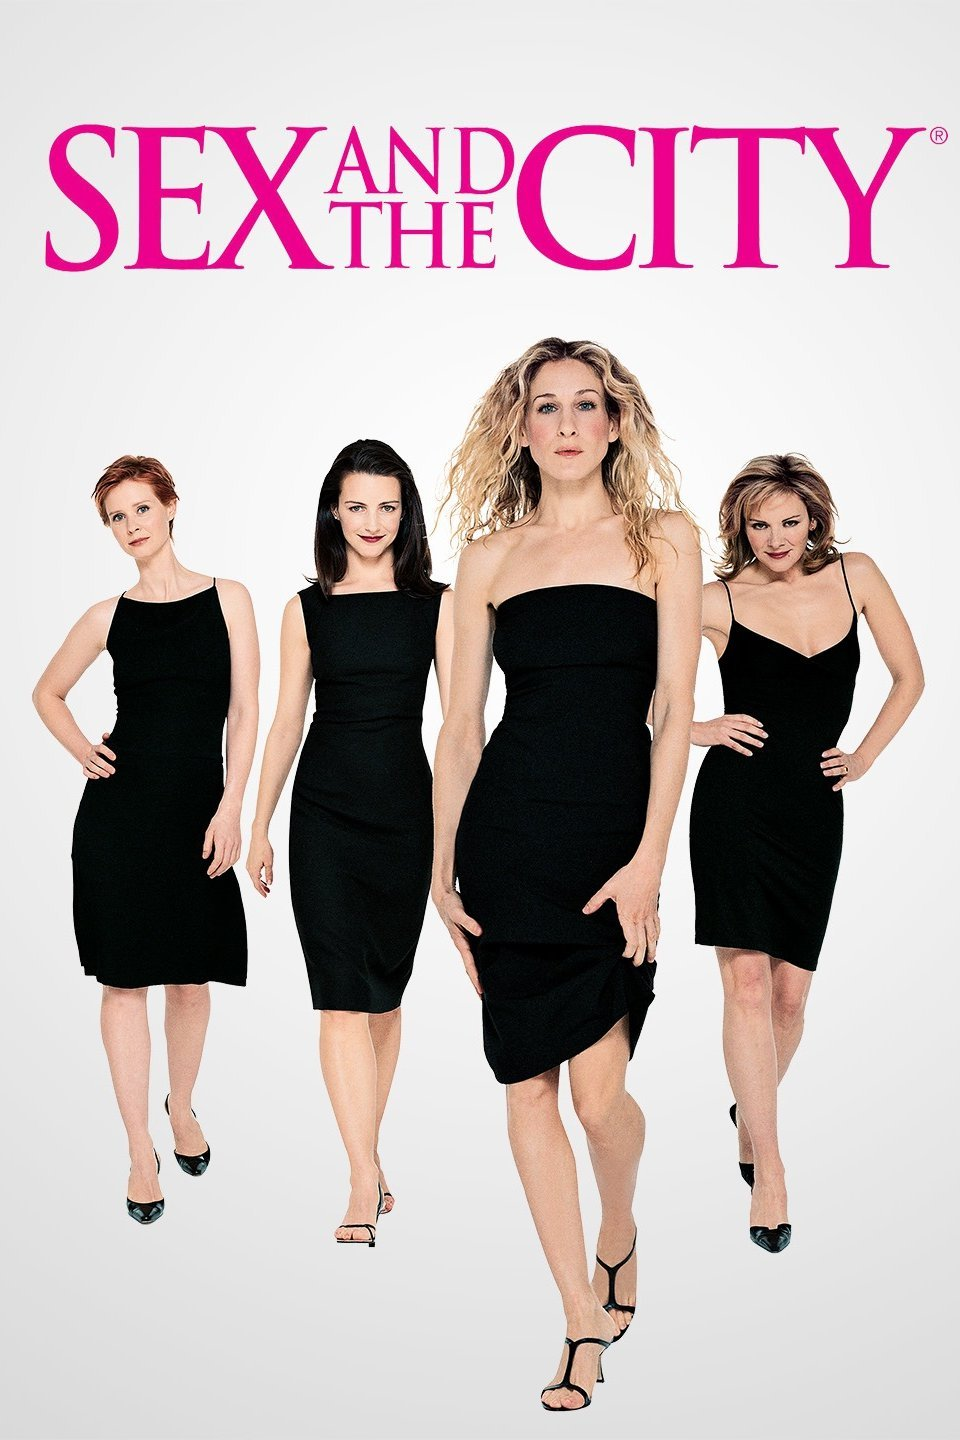 Sex and the city movie characters